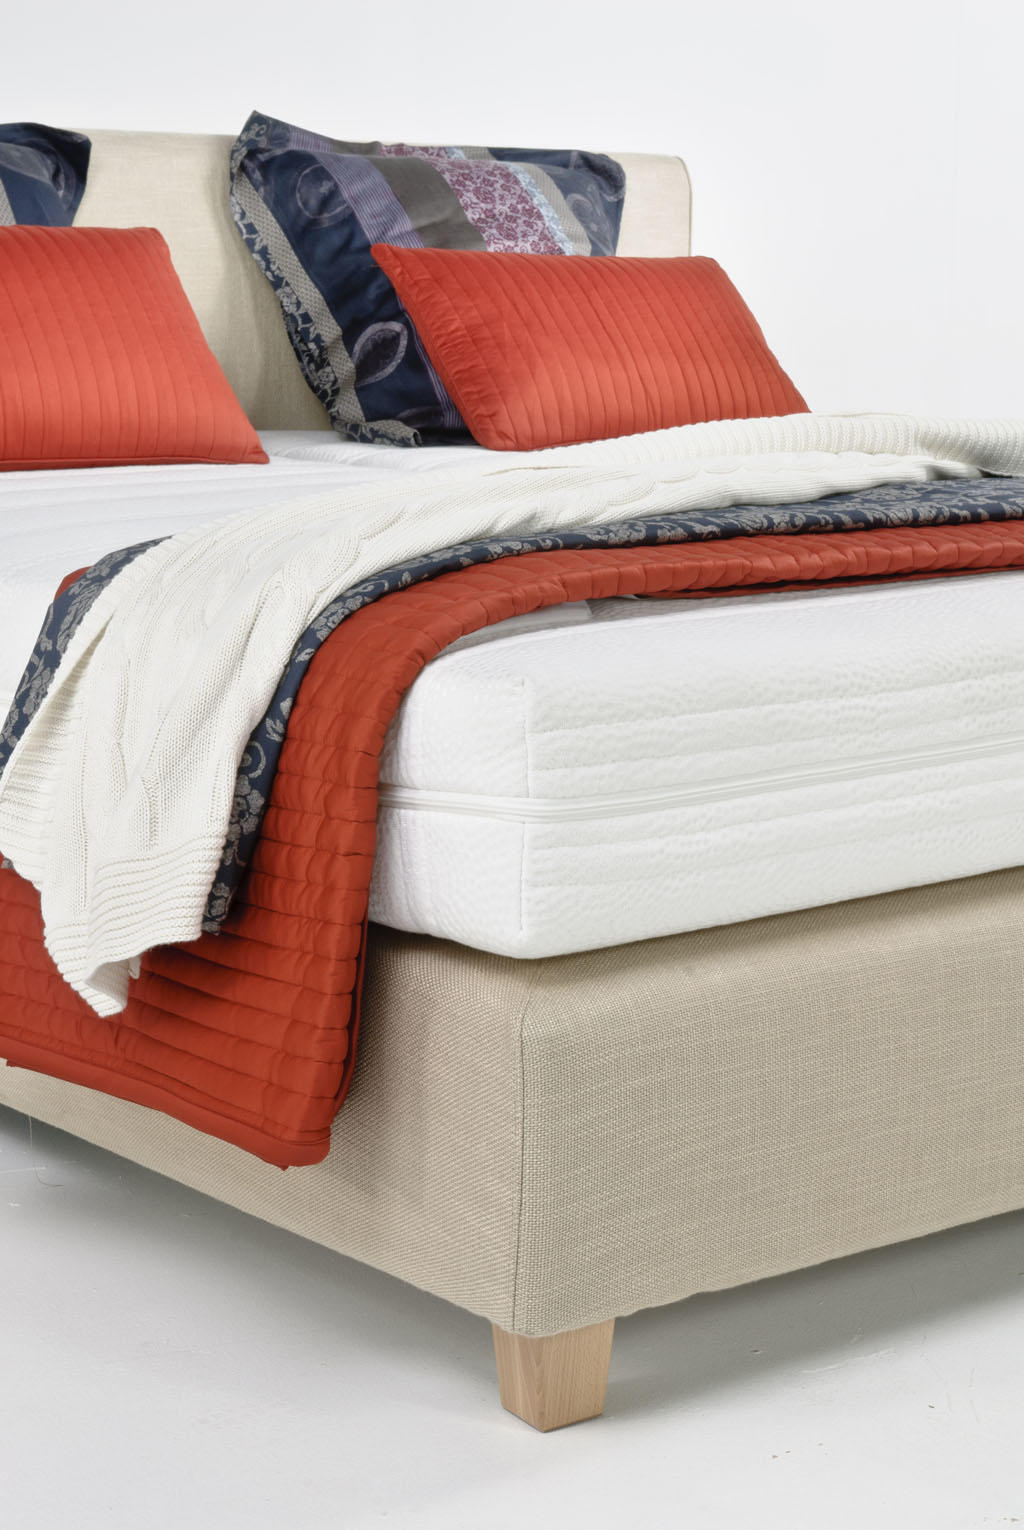 Velda Versus Boxspring Bed With Pocket Memory Mattress